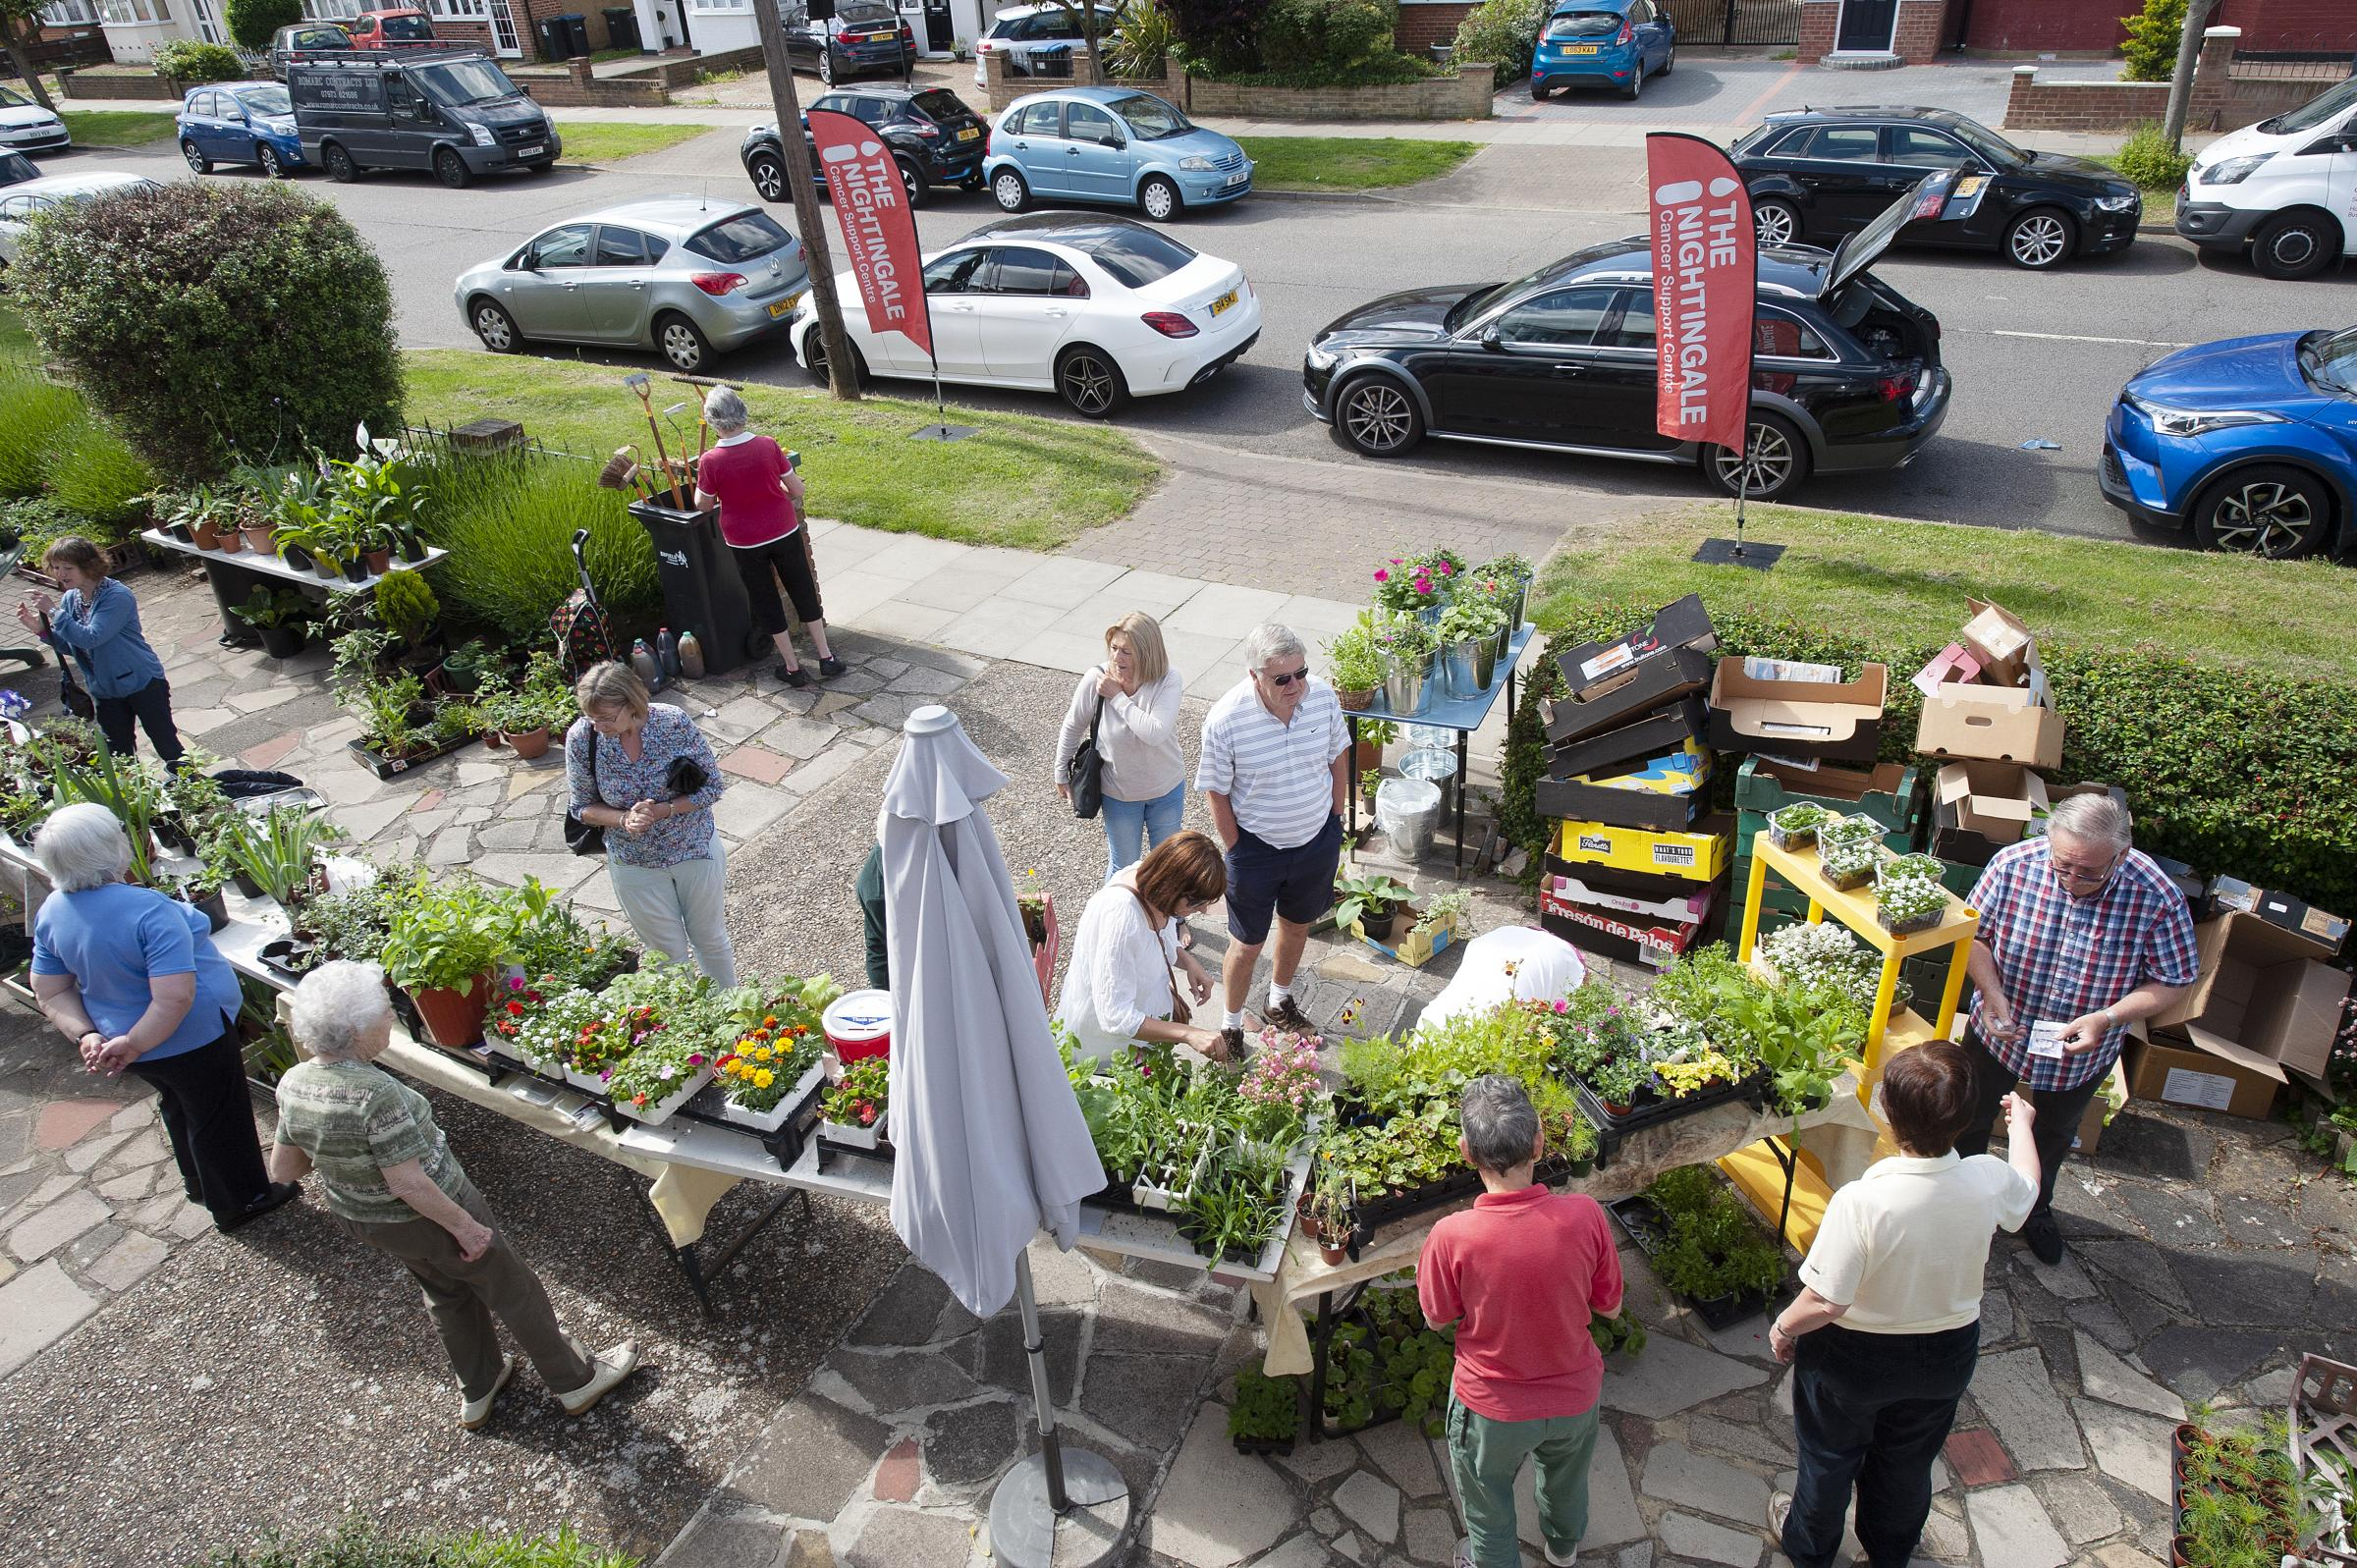 The Nightingale Charity Plant Sale